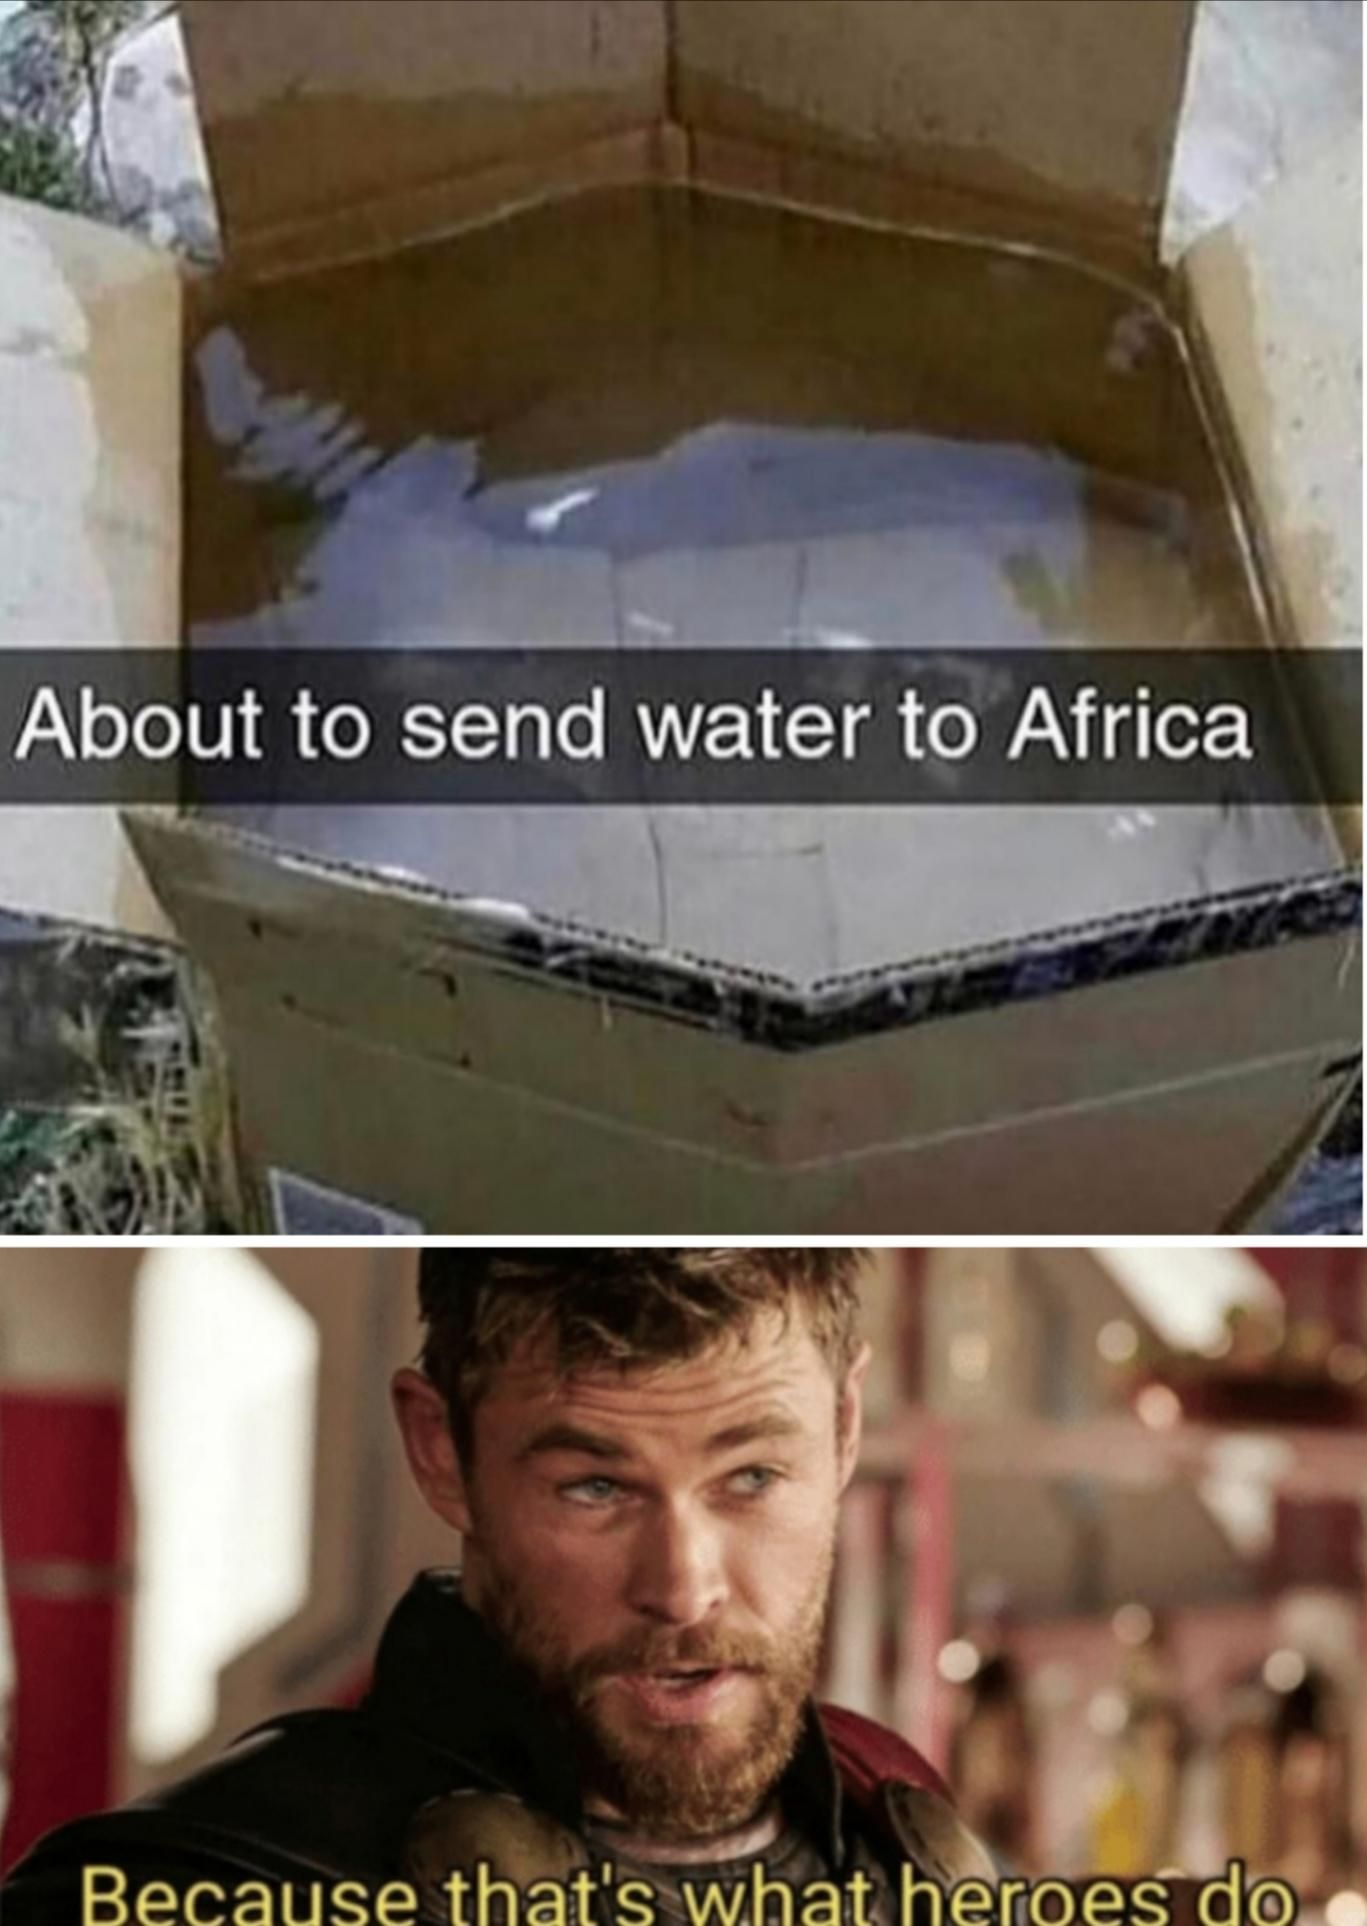 Saving The World Funny Gifs And Memes Animegifs Freshgifs Funnygifs Newgifs Topgifs Gif Funny Gif Funny Relatable Memes Best Funny Videos